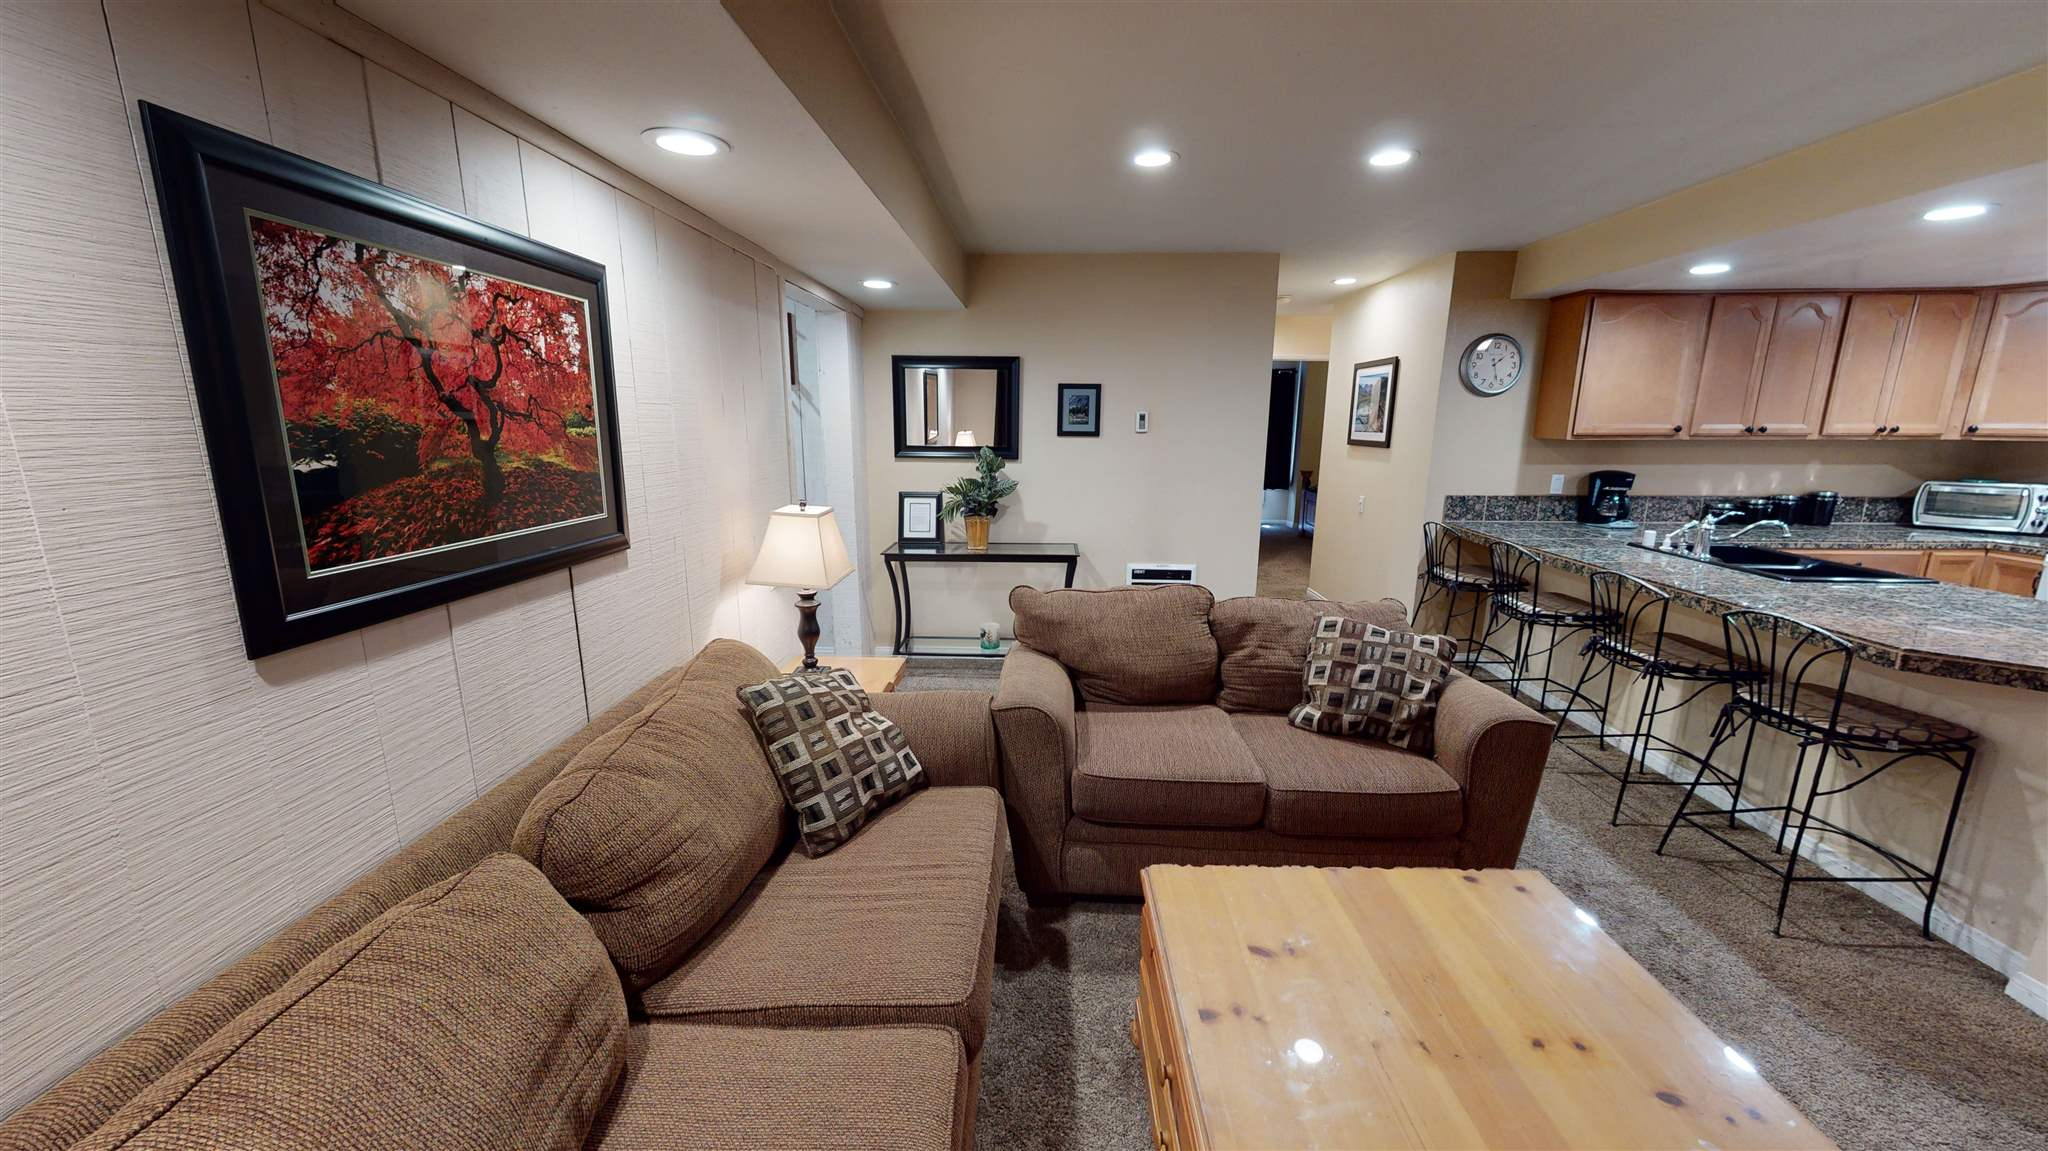 This is a beautiful 2BR/2BA condo with a great in town location: walk to restaurants, shops, Vons, and on the town shuttle service. Clean well maintained unit with newer carpet. Unit has an instant hot water system. The complex amenities features a pool, jacuzzi, sauna, rec. room tennis courts, and laundry facilities. Unit is being sold furnished and inventory will be provided on request. THE COMMENTS ON ZILLOW UNDER WHAT THE OWNER LIKES ABOUT THE CONDO, THE FACTS AND FEATURES, AND THE SALES HISTORY ARE INCORRECT AND PERTAIN TO A 1BR IN THIS PROJECT,NOT THIS UNIT. FOR DETAILS ON THIS UNIT CLICK ON OVERVIEW.